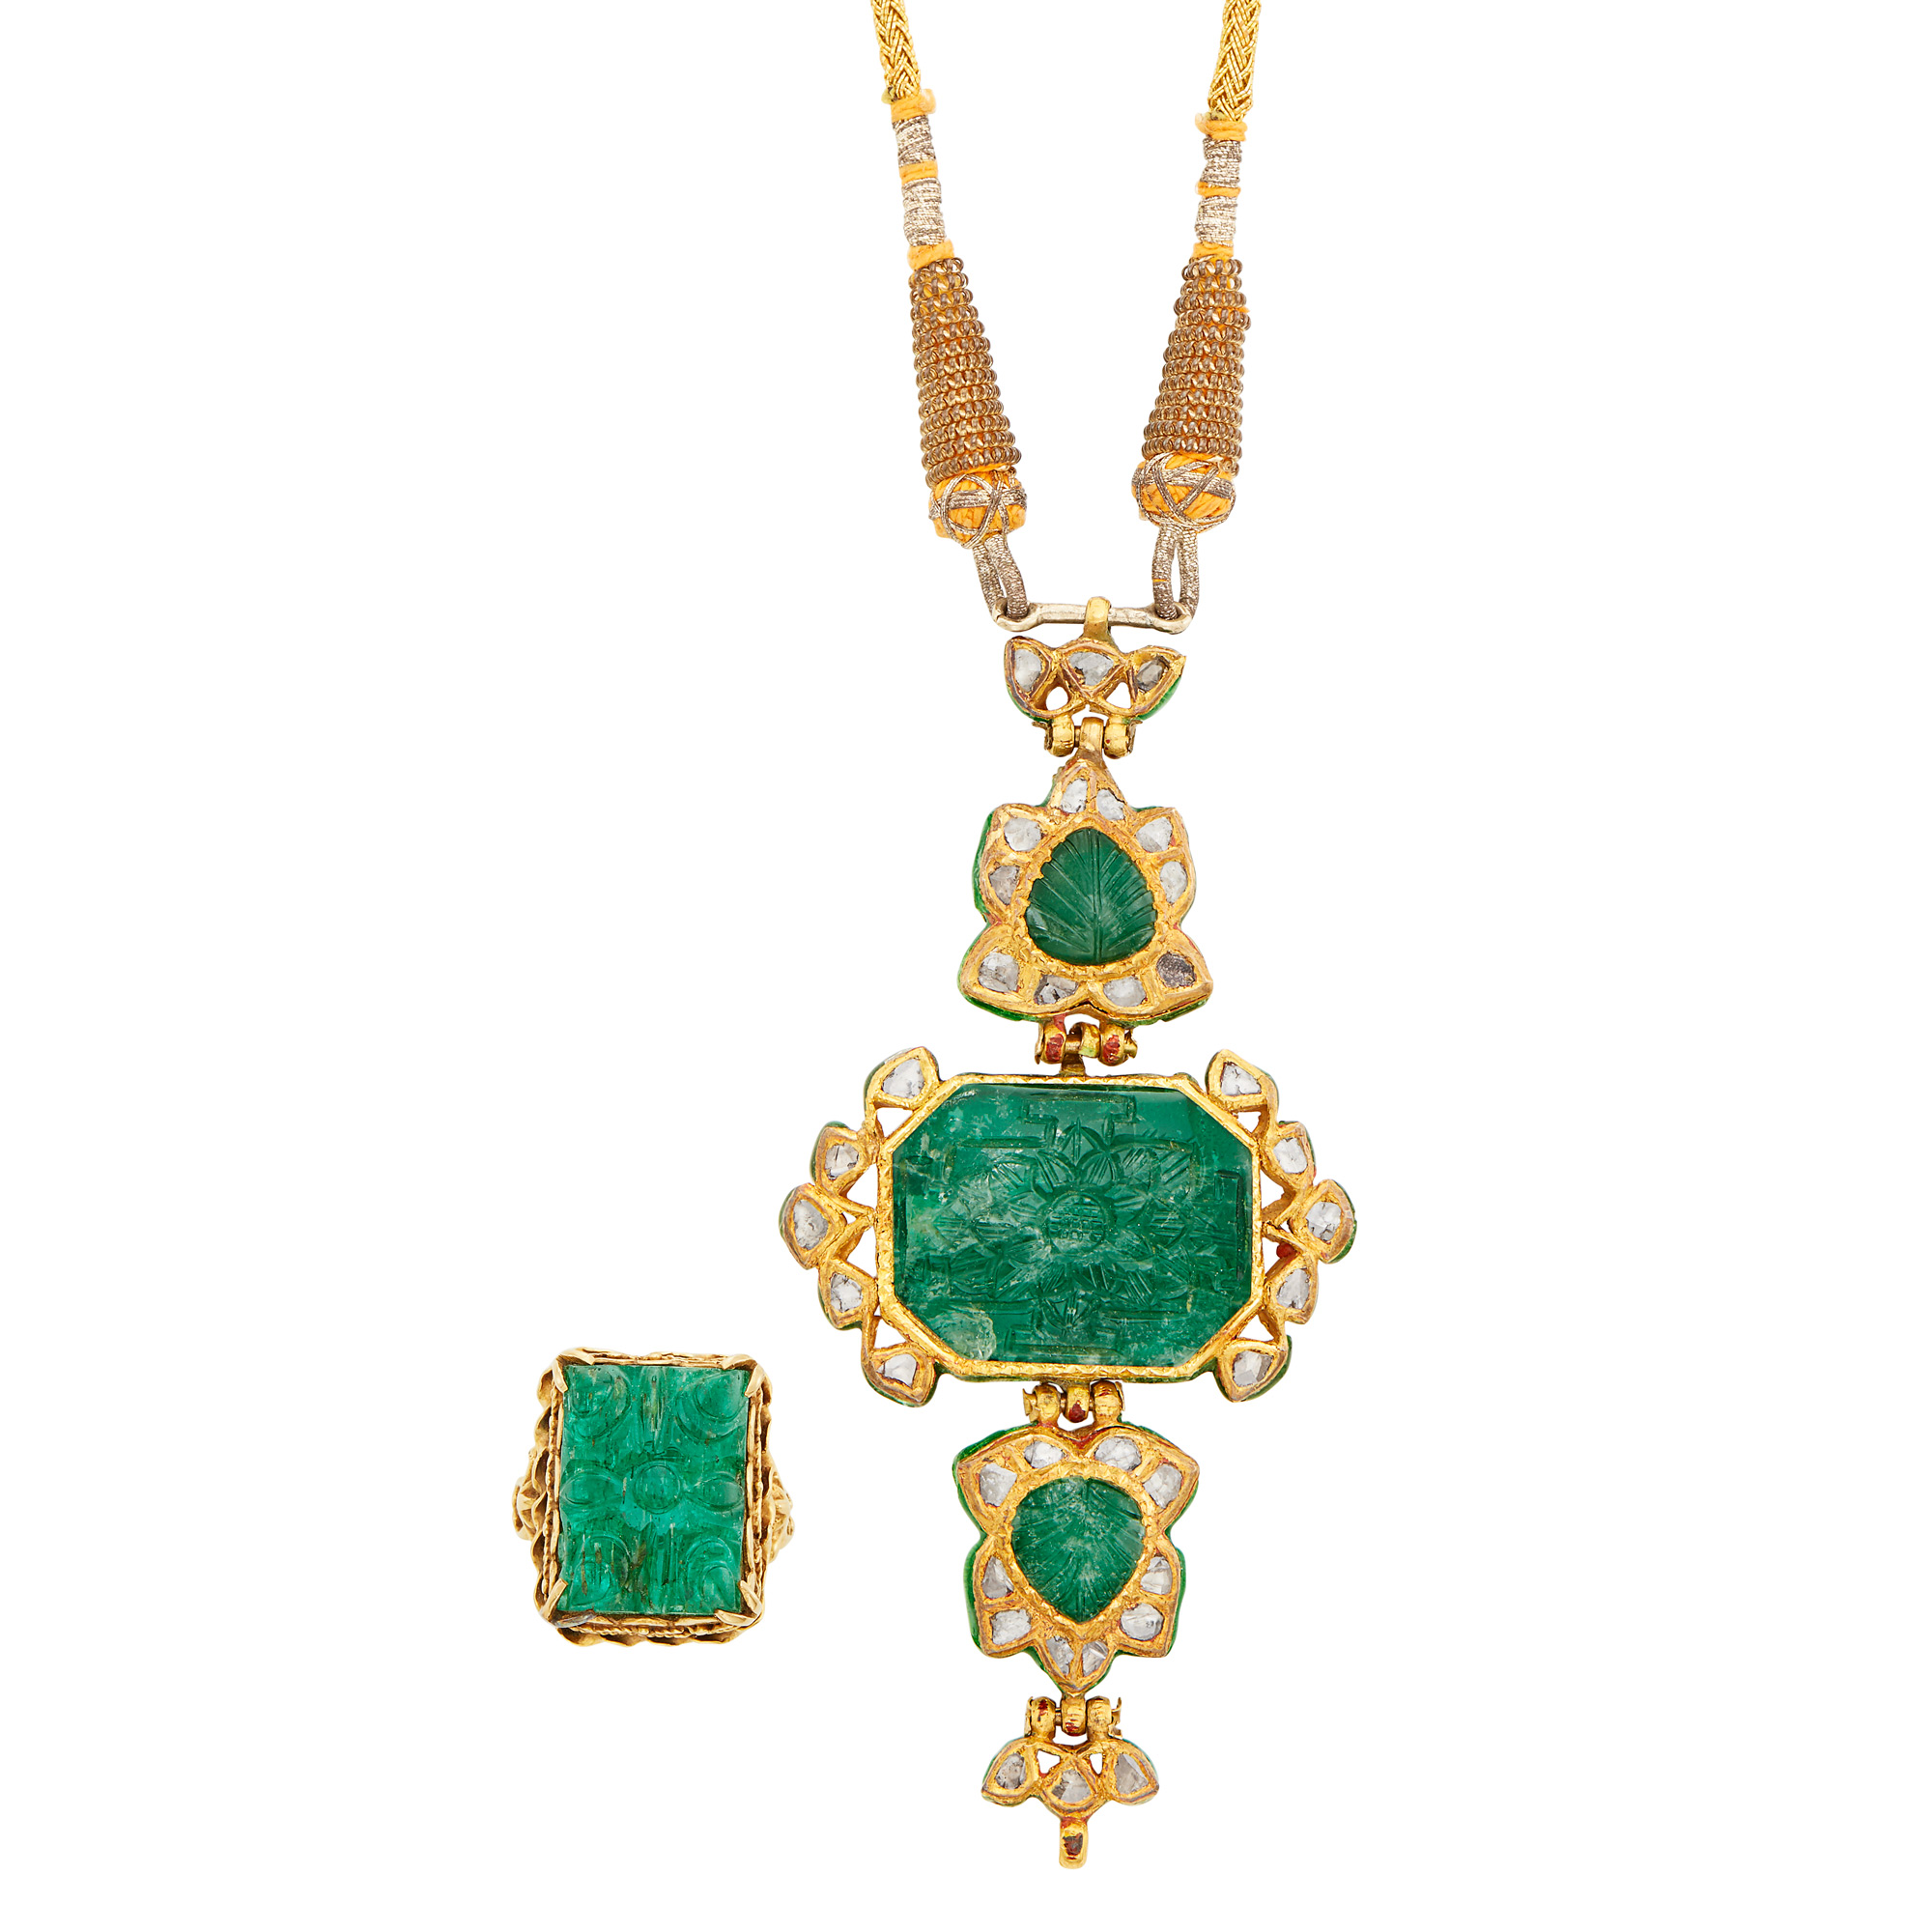 Lot image - Indian Gold, Jaipur Enamel, Carved Emerald and Foil-Backed Diamond Pendant on Cord Necklace and Ring